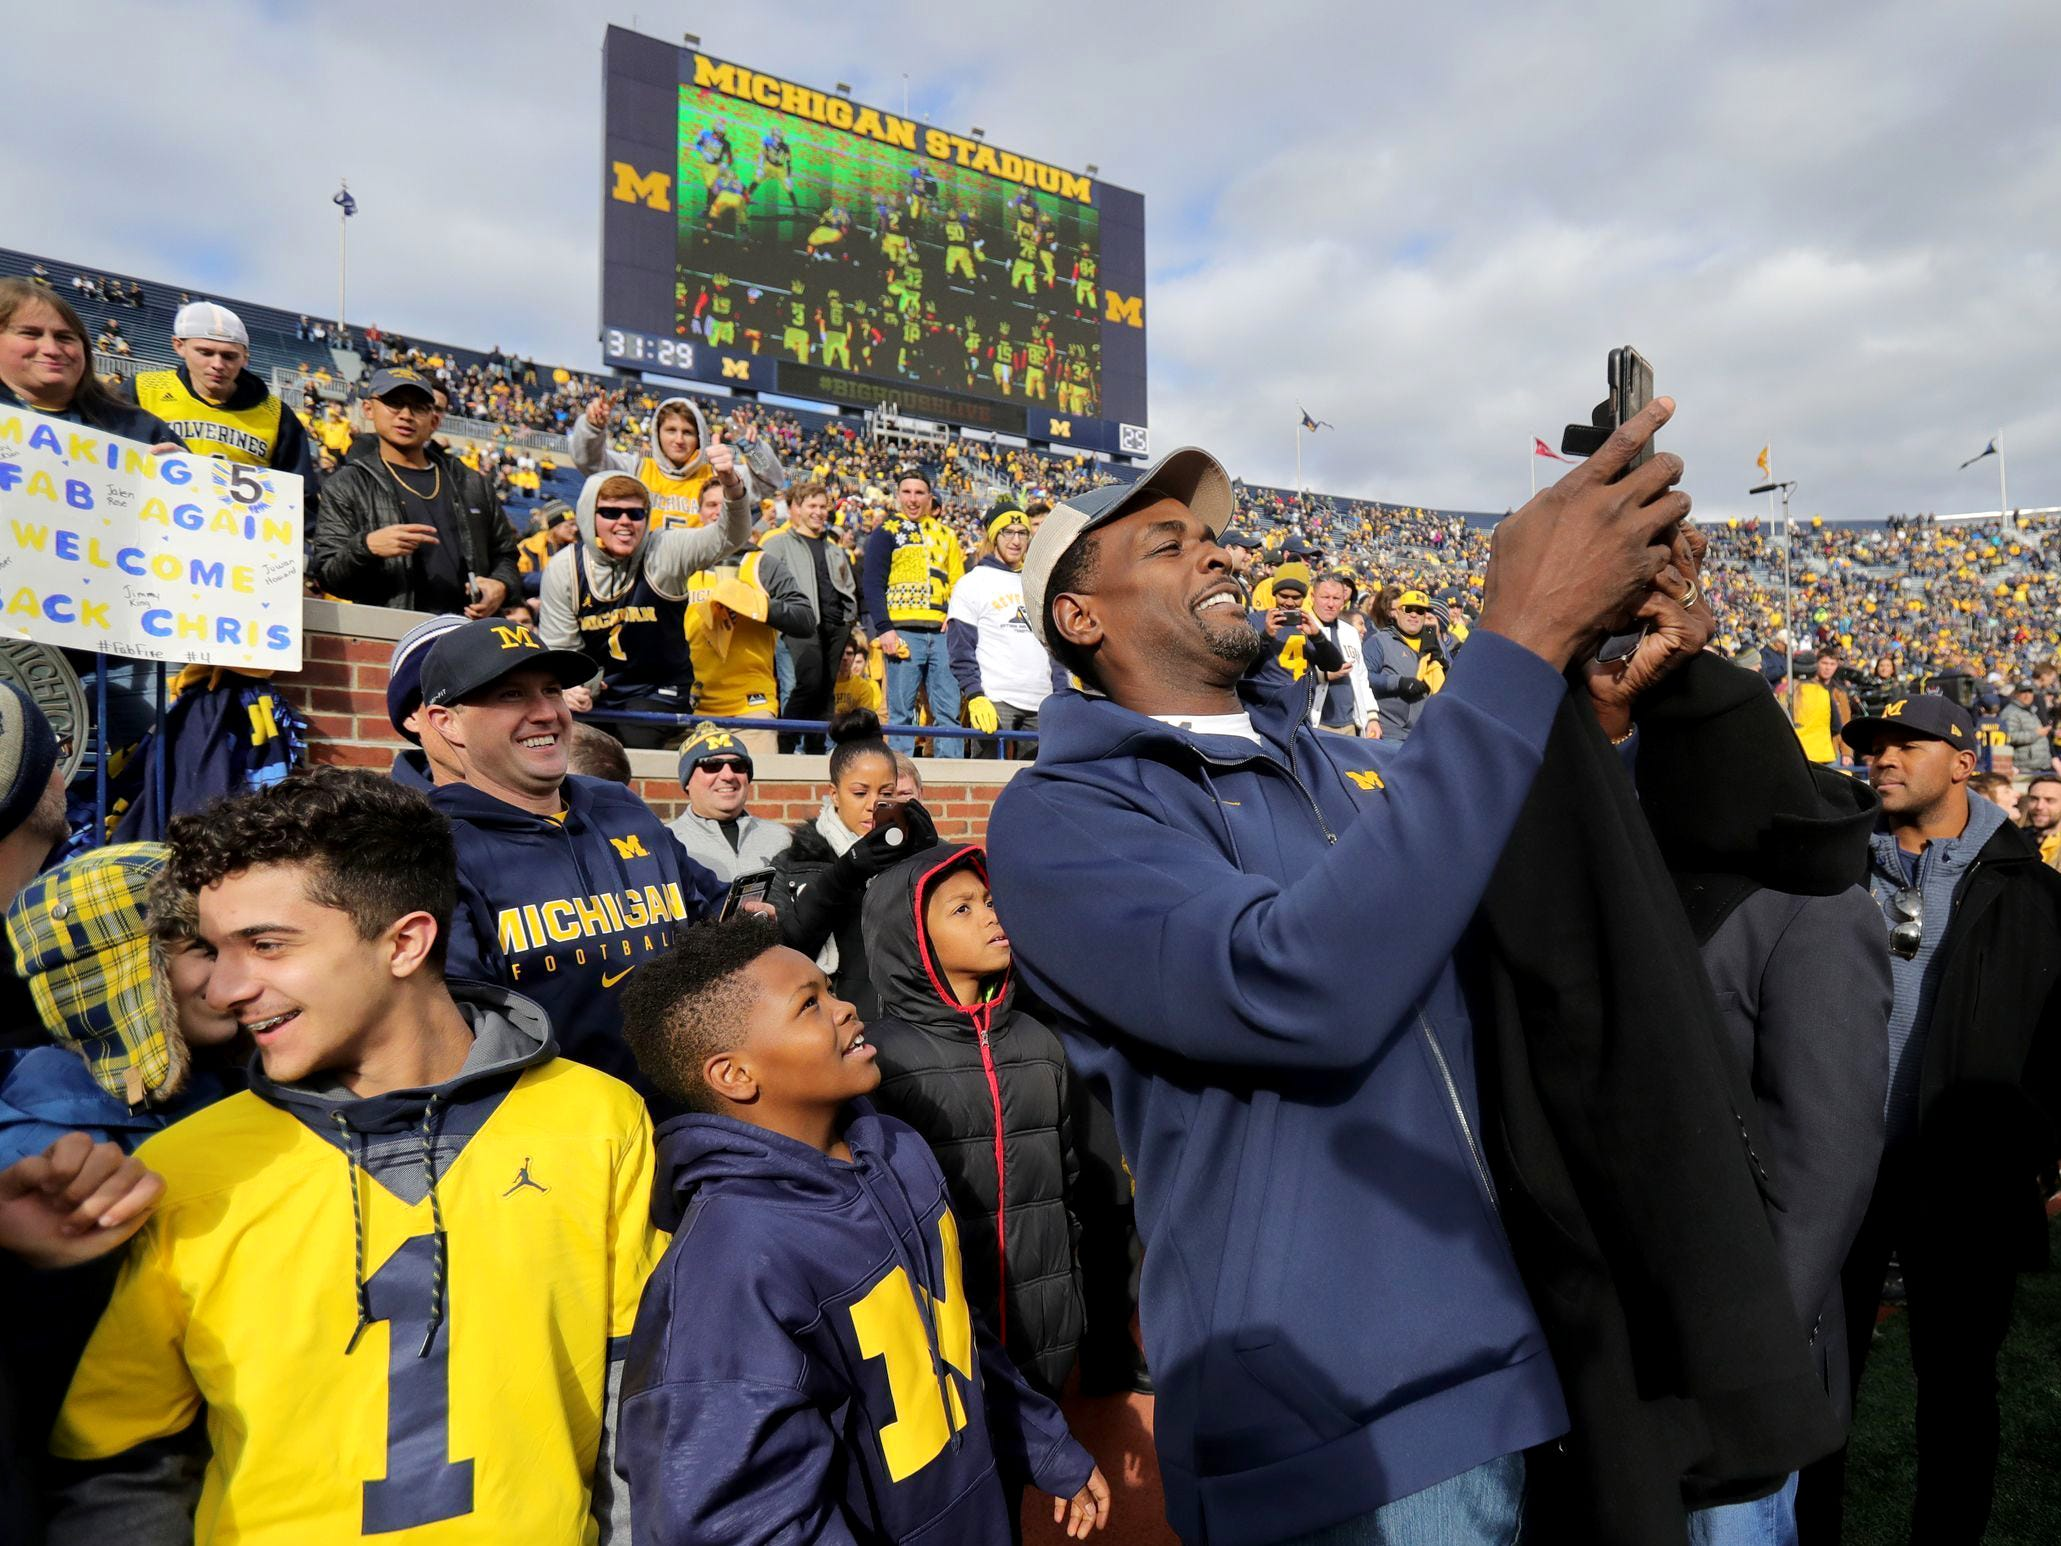 Former Michigan basketball player Chris Webber takes a selfie with fans on the football field prior to the start of the Michigan and Penn State game on Saturday, Nov. 3, 2018, at Michigan Stadium.